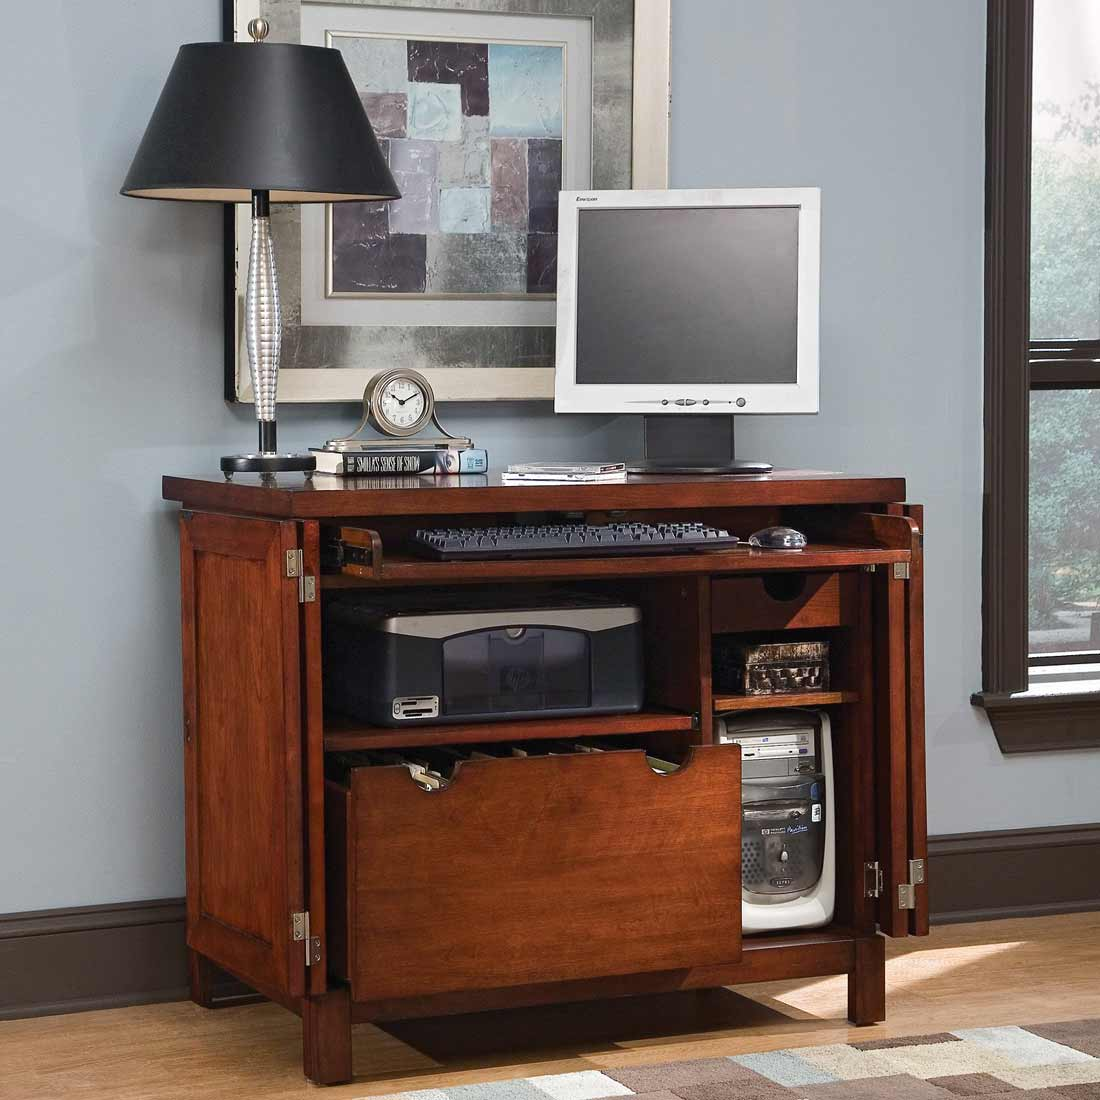 Hanover cheap computer armoire for home office